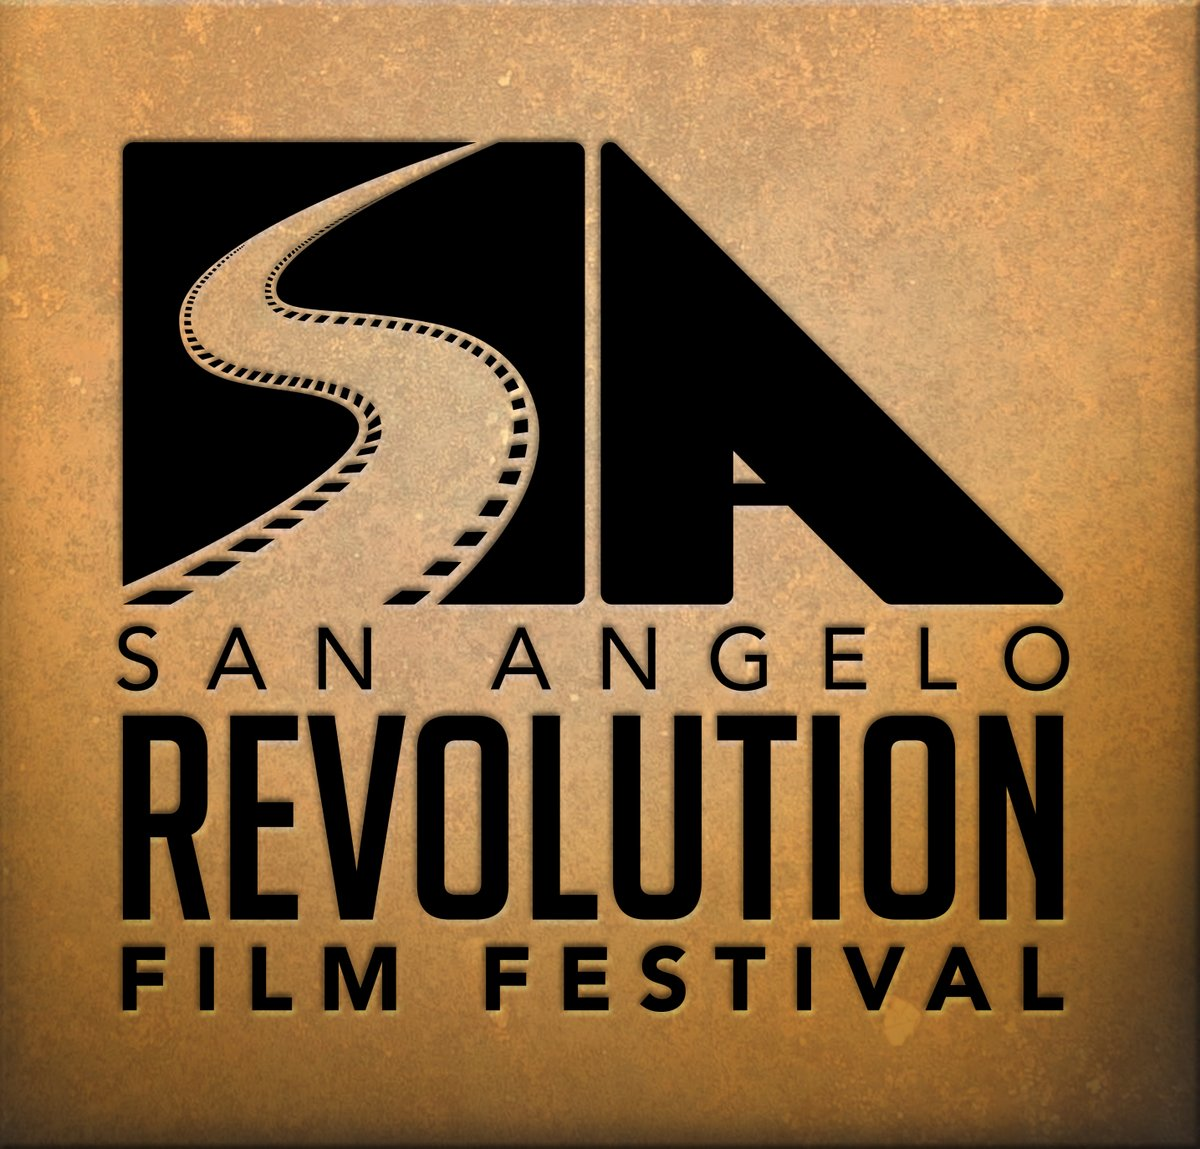 Hey, @AngeloState. We hope you'll join us for the San Angelo REVOLUTION Film Festival this weekend - October 14-16 at the SAPAC and Murphey Performance Hall.